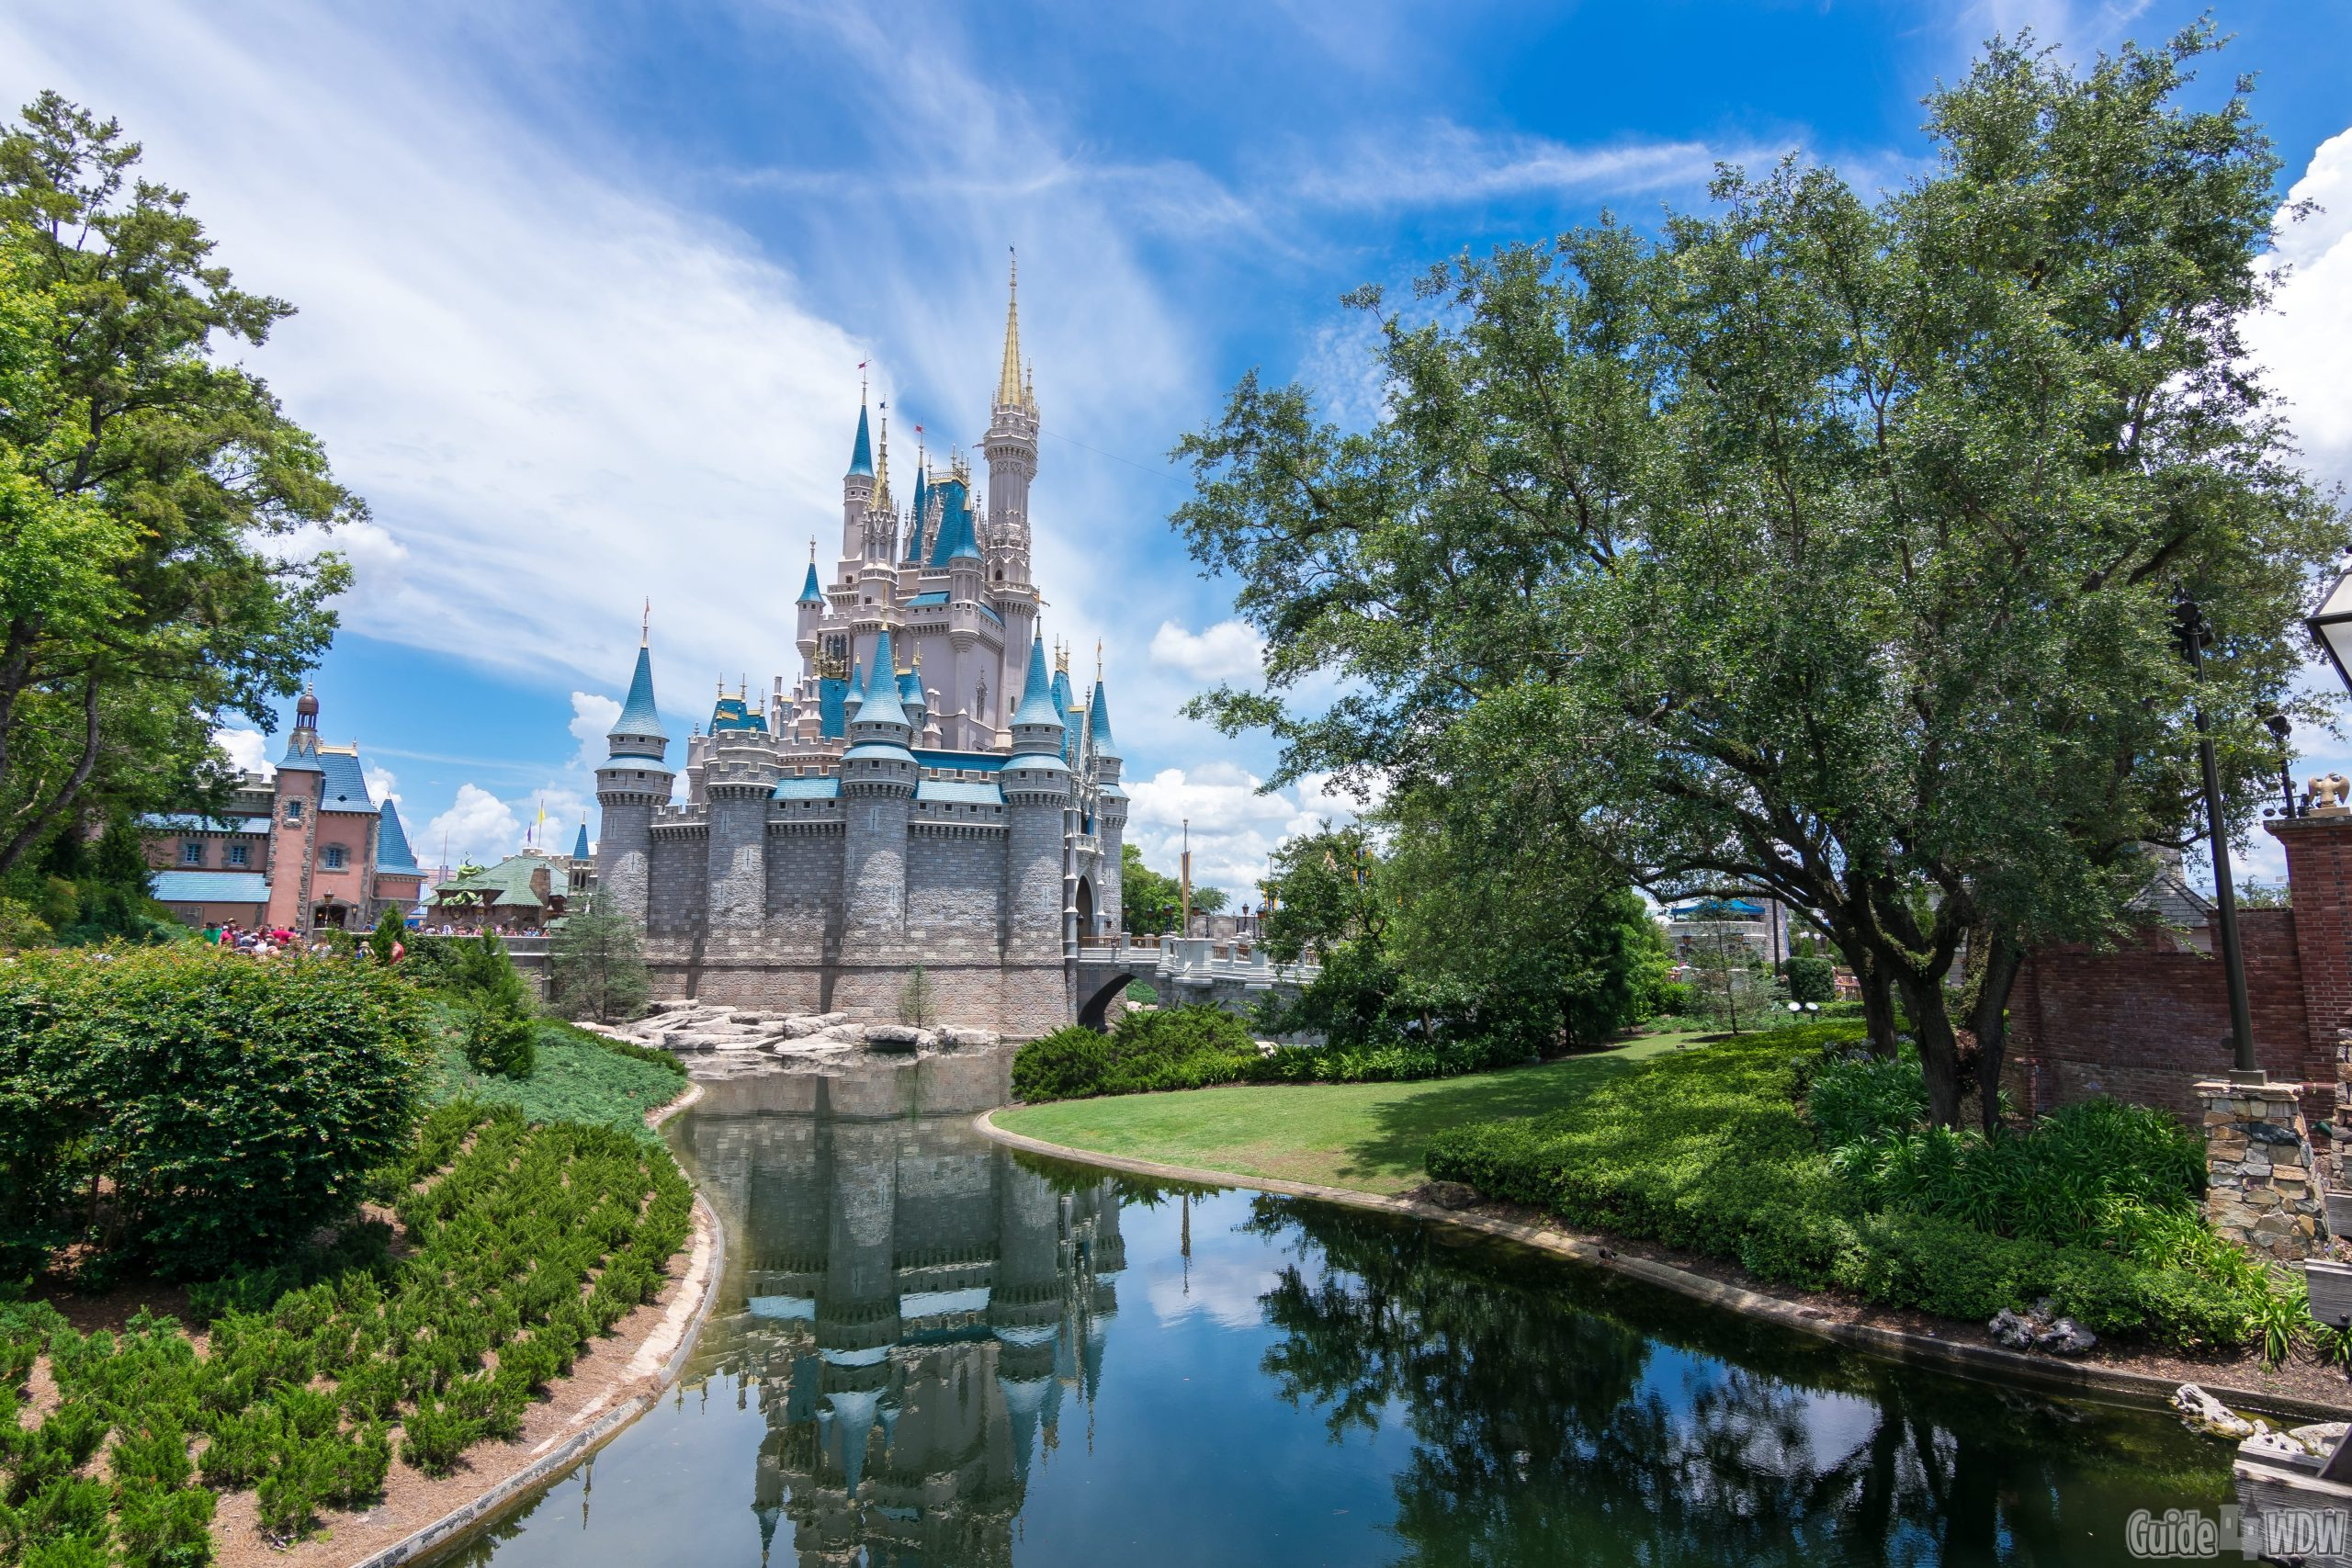 What will Disney World crowds be like after reopening?